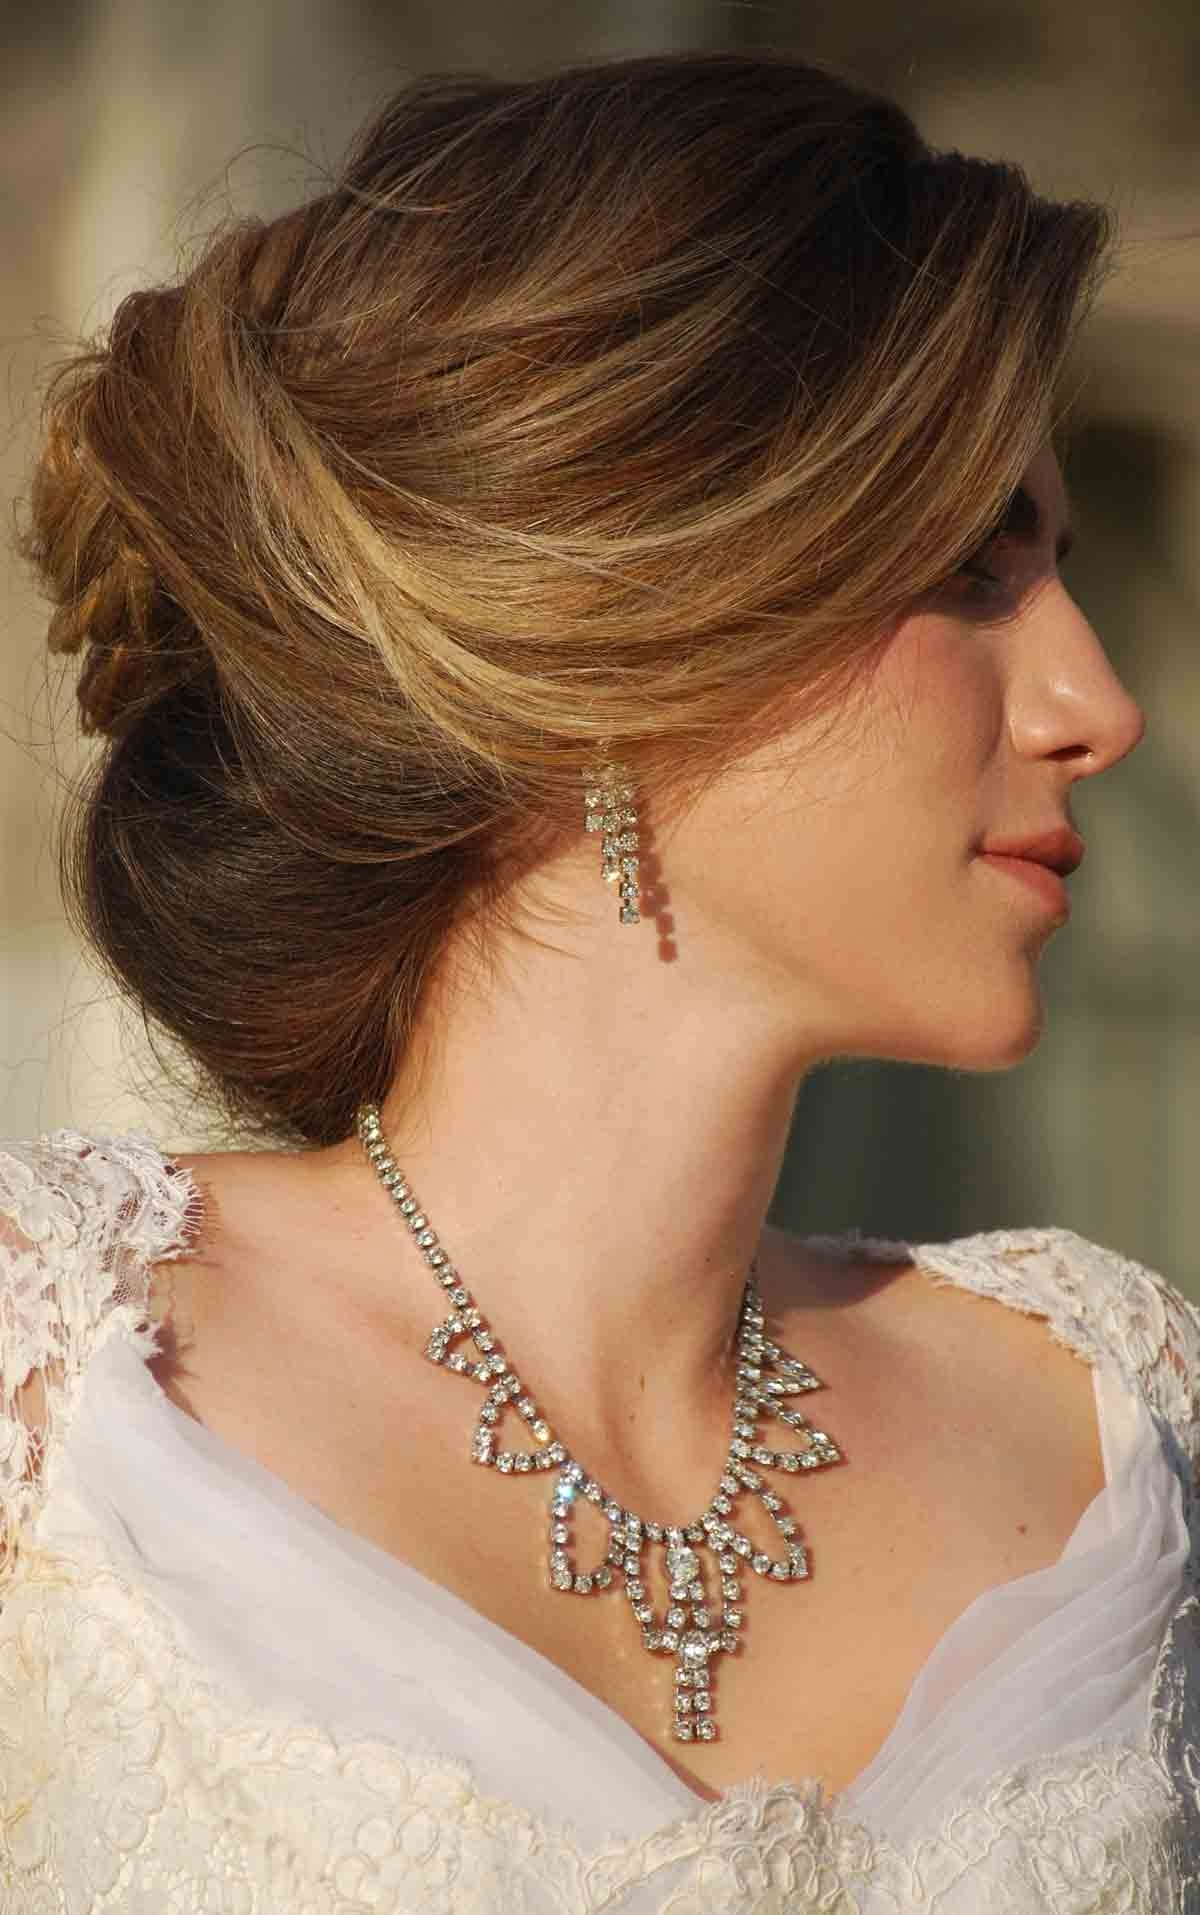 Classy Wedding Mother Of The Bride Hairstyles For Hair Styles For With Favorite Wedding Reception Hairstyles For Guests (View 14 of 15)